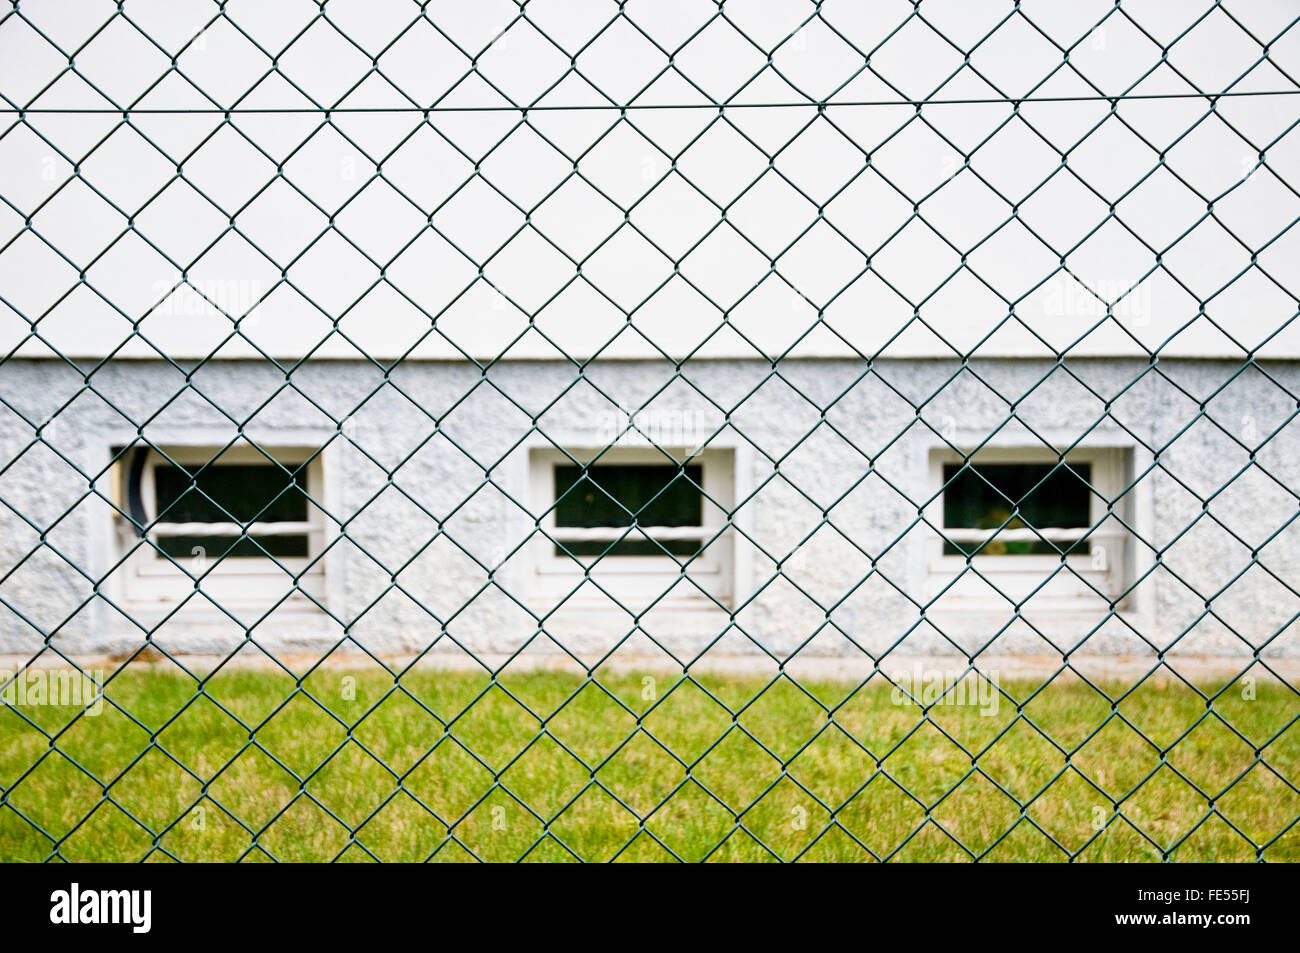 fence, mesh wire fence, chain link fence - Stock Image